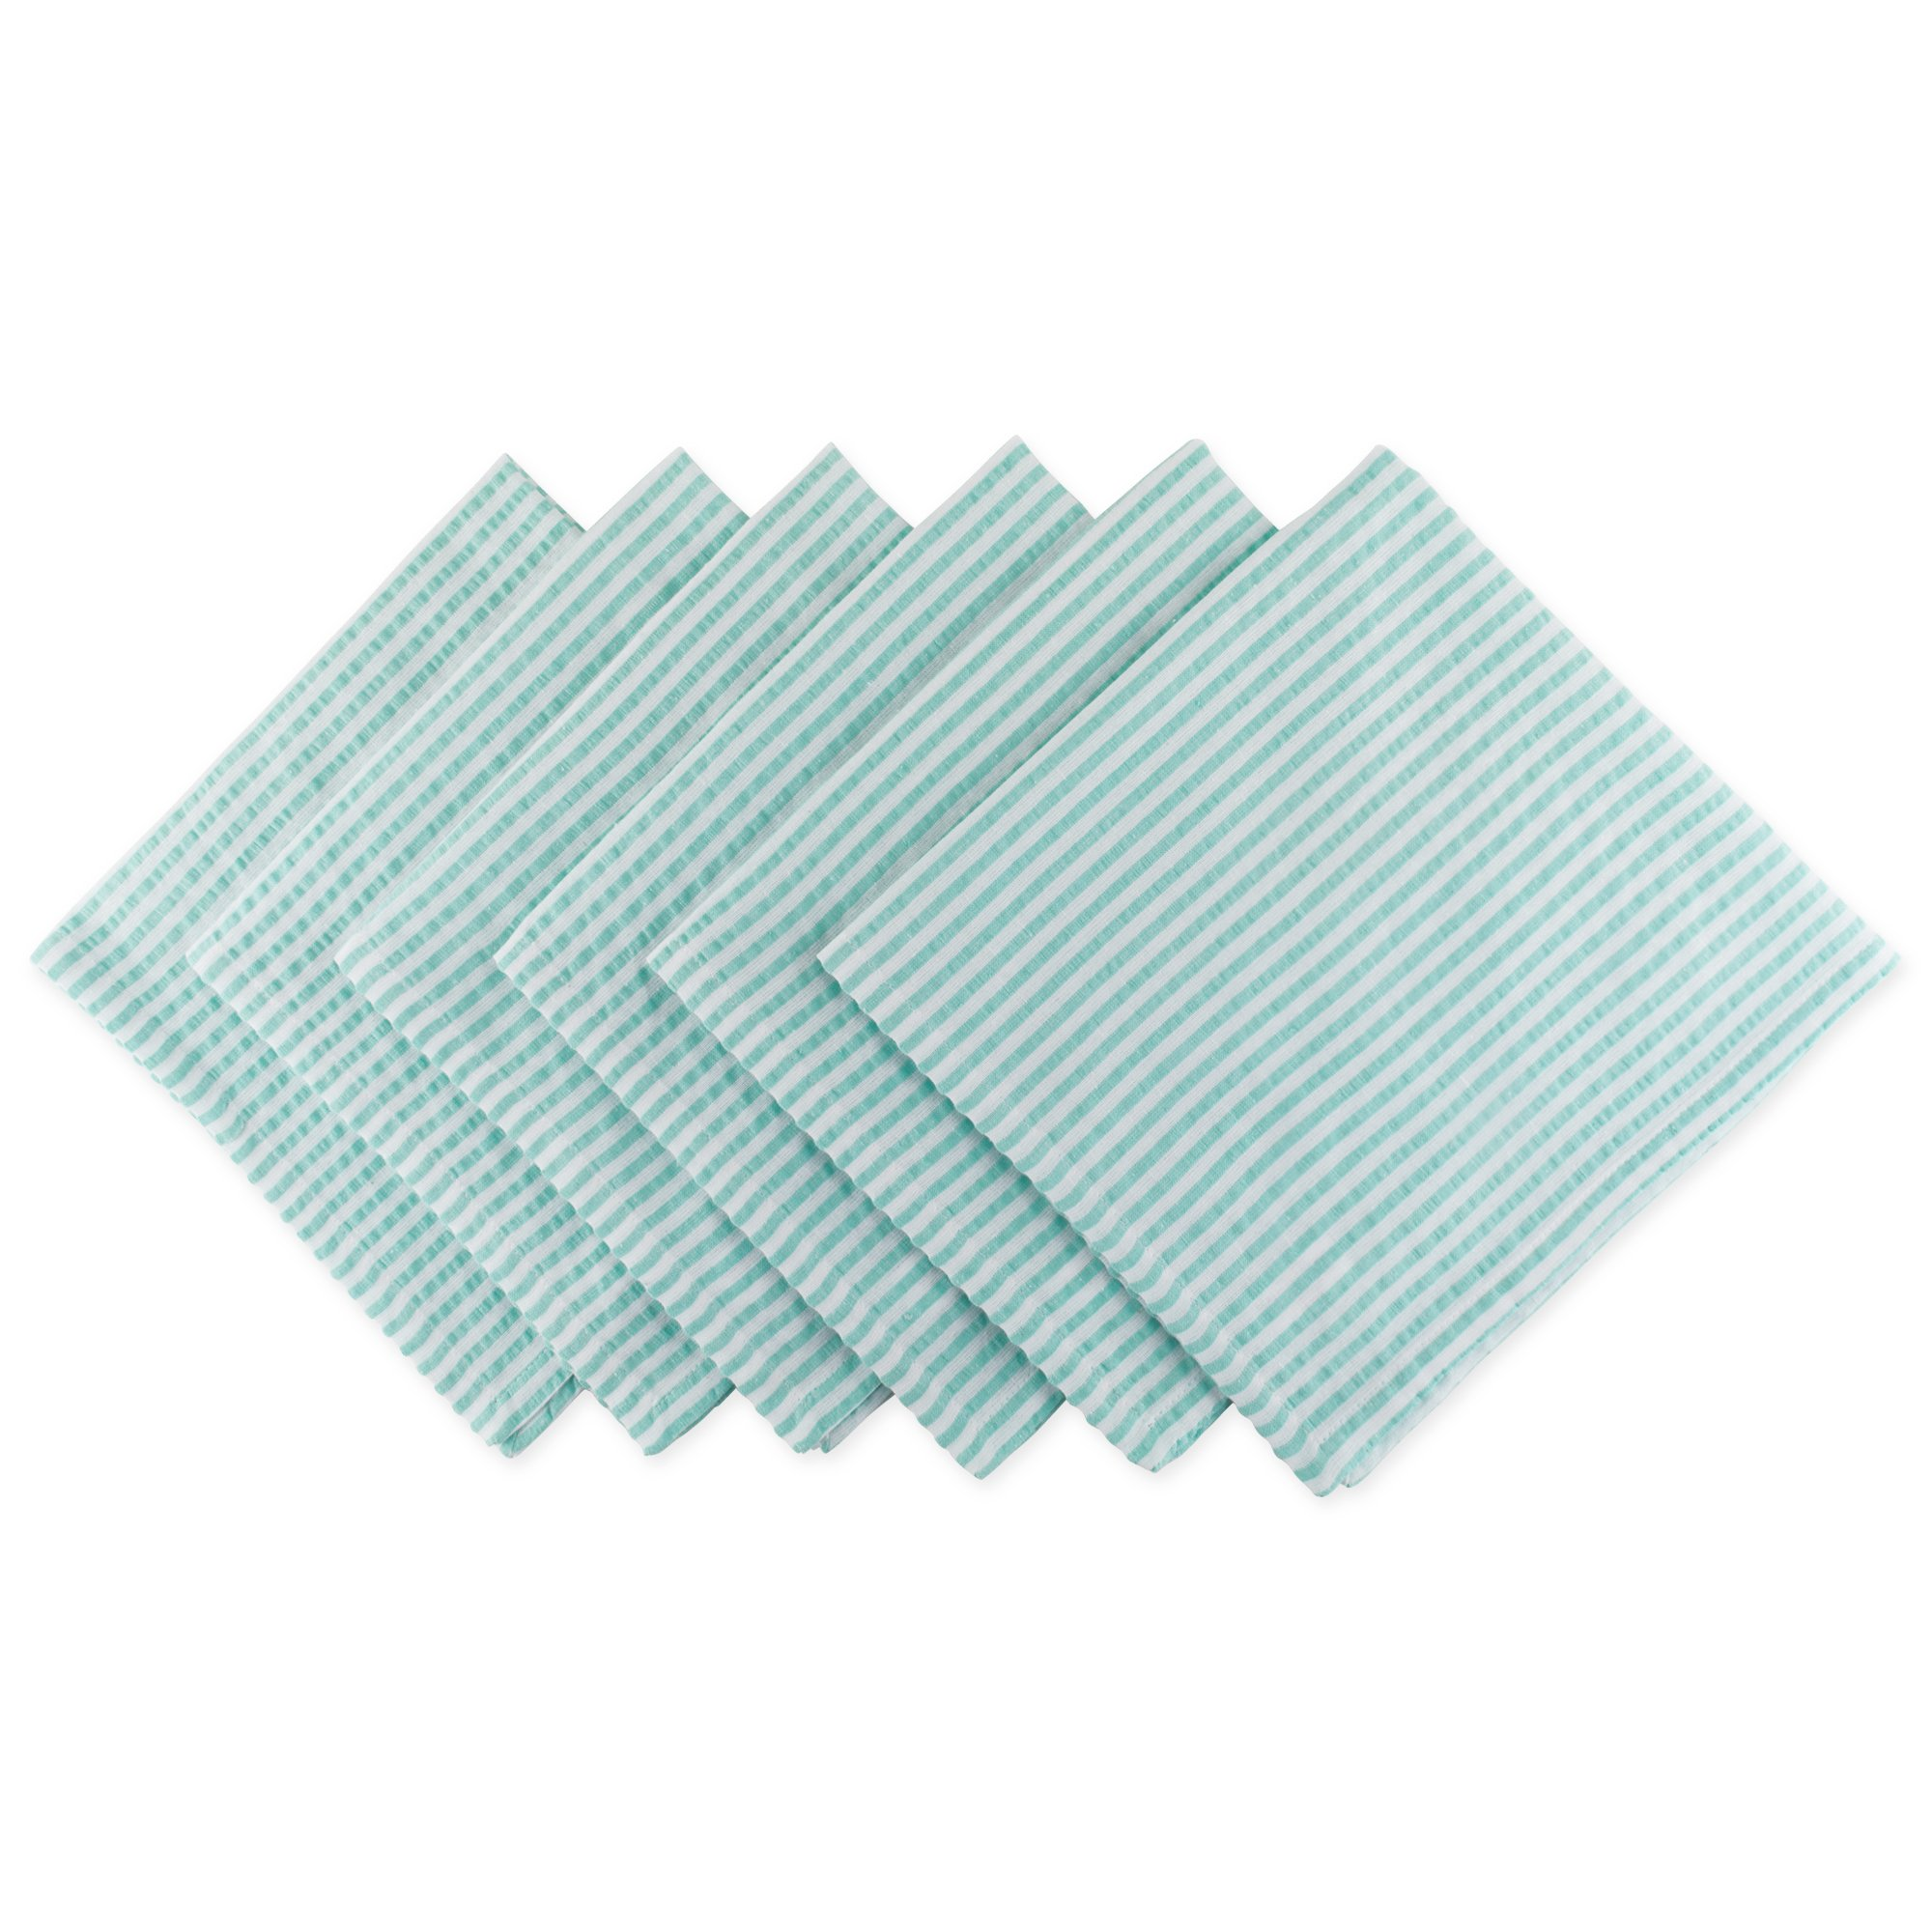 DII Seersucker Striped for Brunch, Weddings, Showers, Parties and Everyday Use, Napkin, Aqua Blue